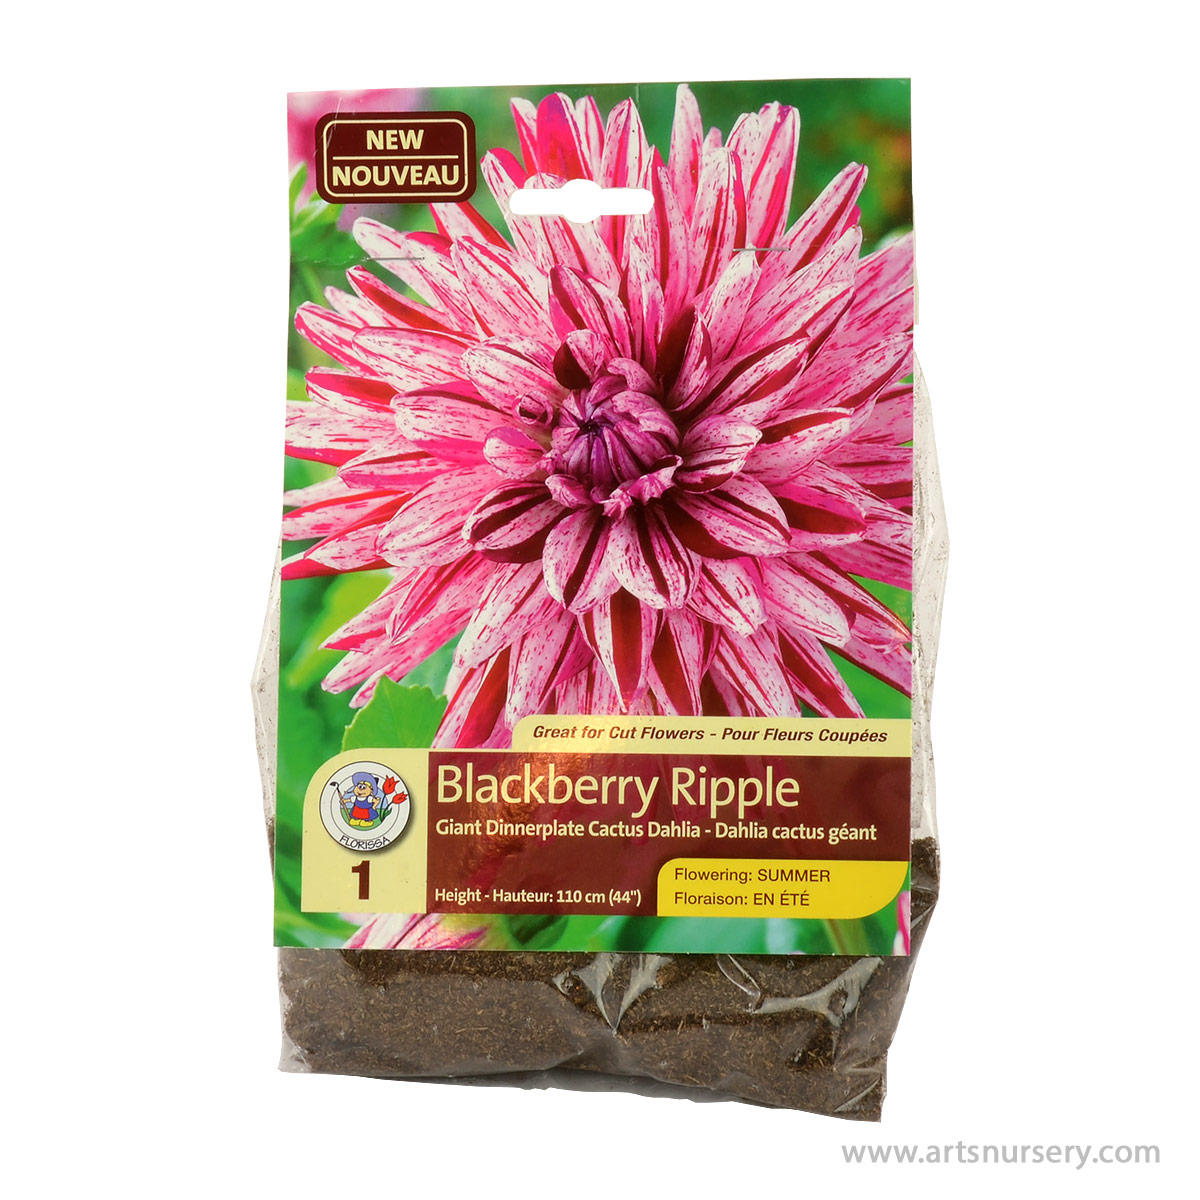 Dahlia Blackberry Ripple Tuber